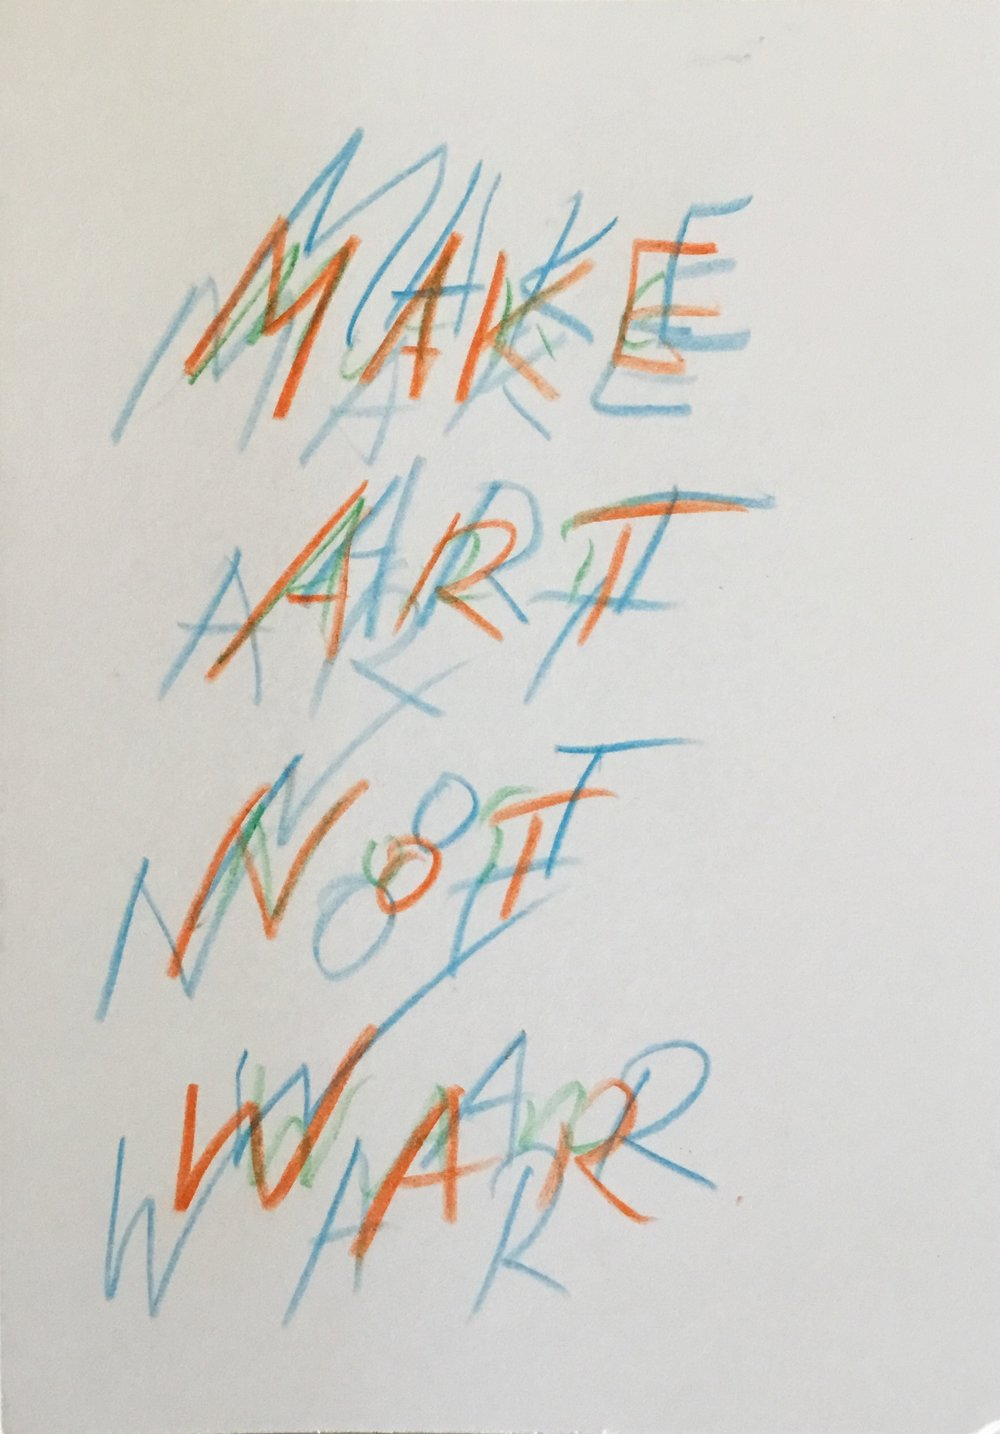 036 make art not war.JPG